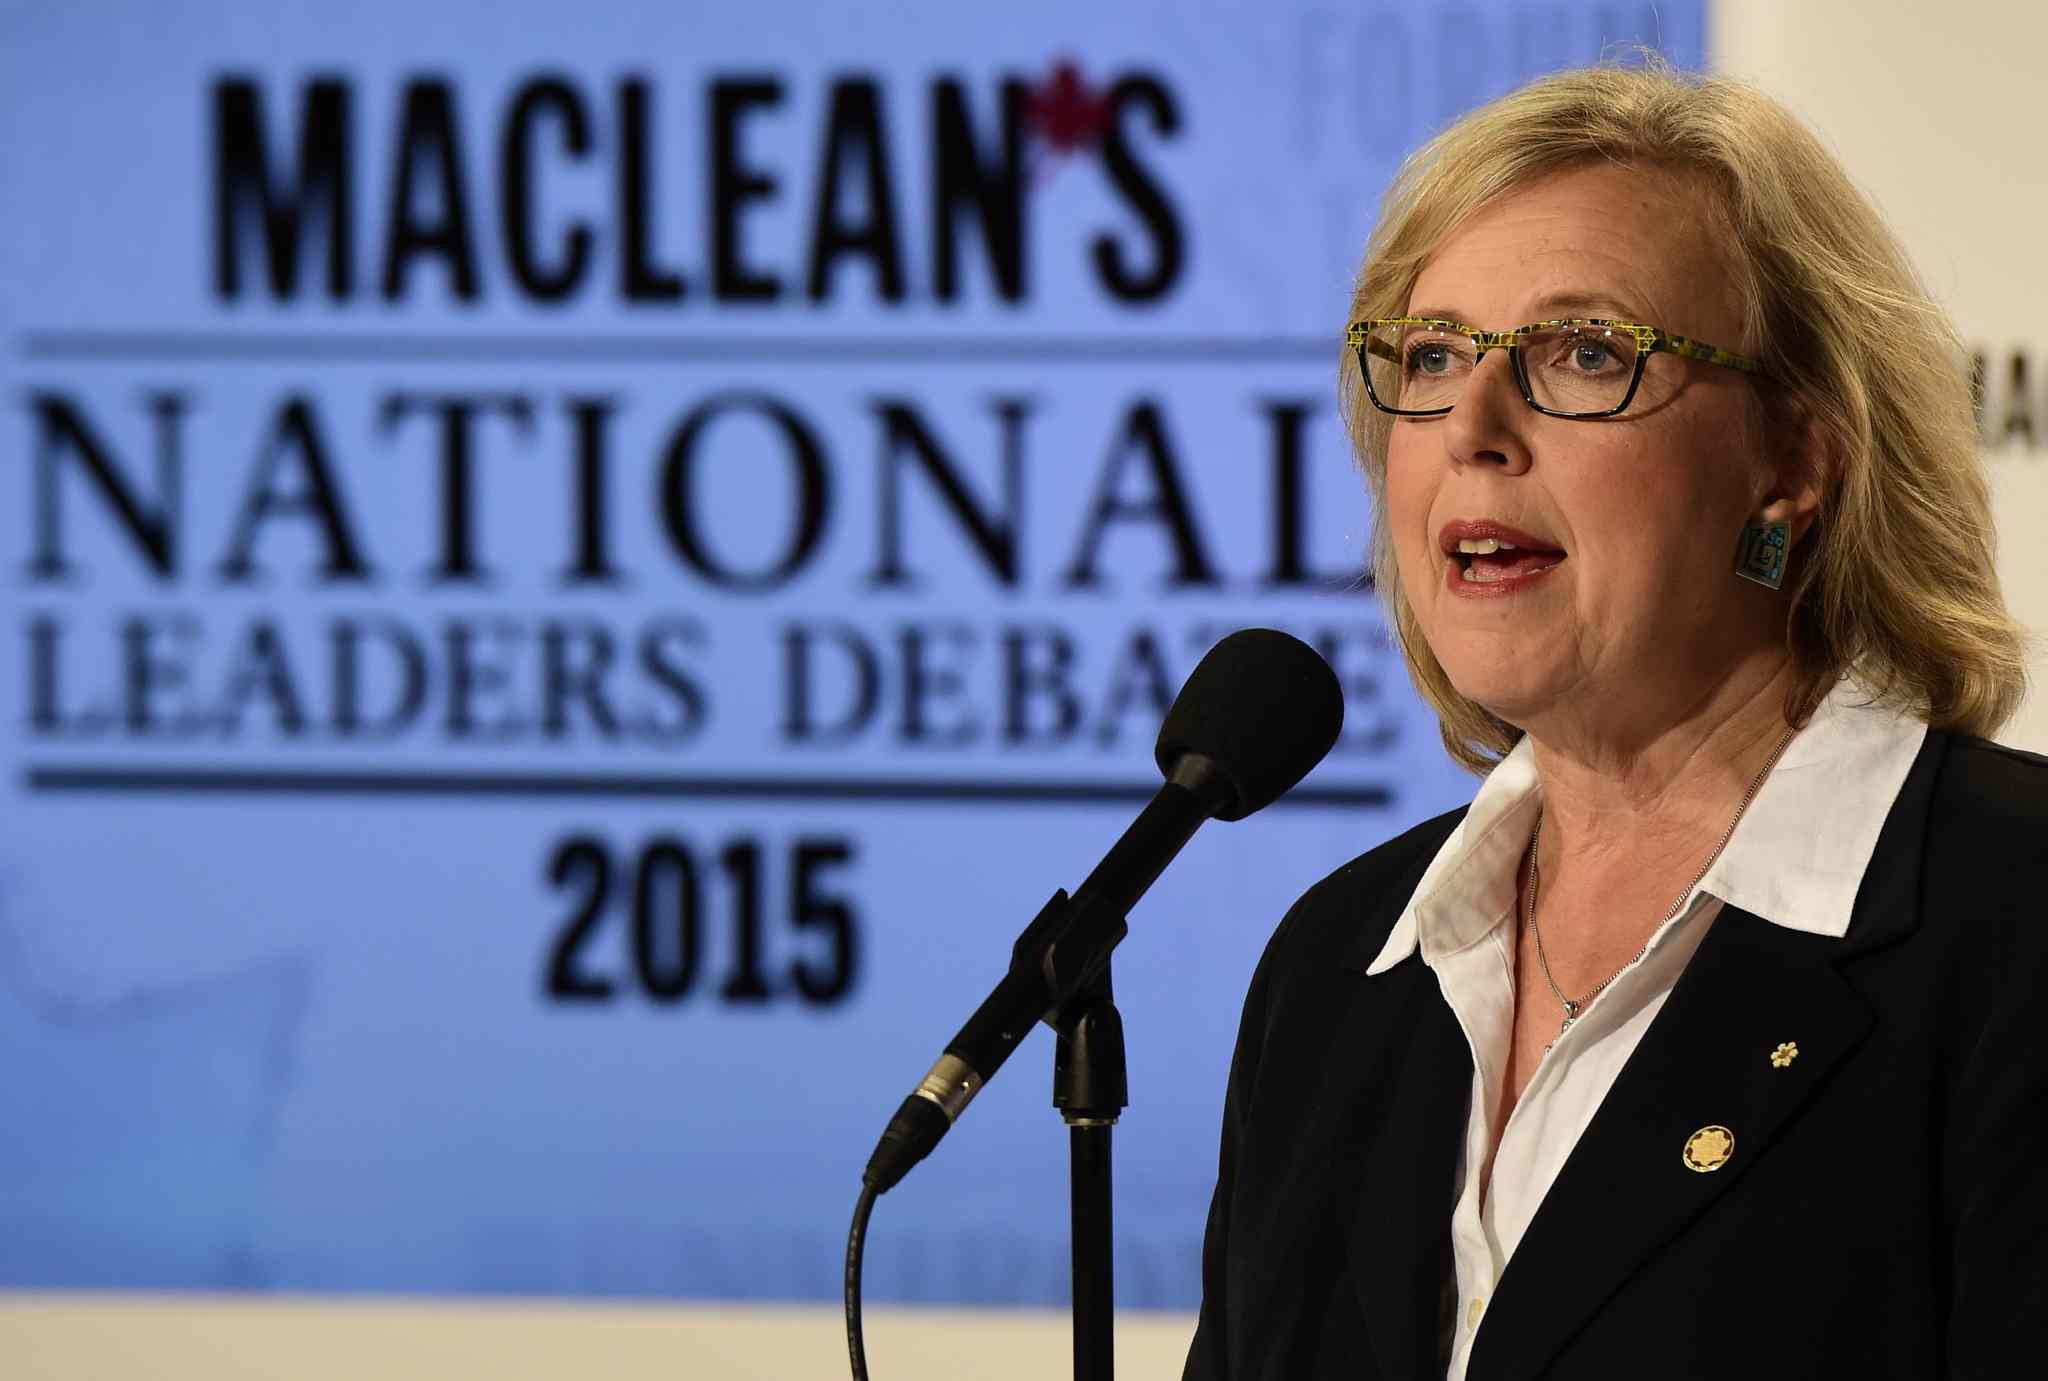 Green Party leader Elizabeth May speaks to members of the media after taking part in the first leaders' debate.